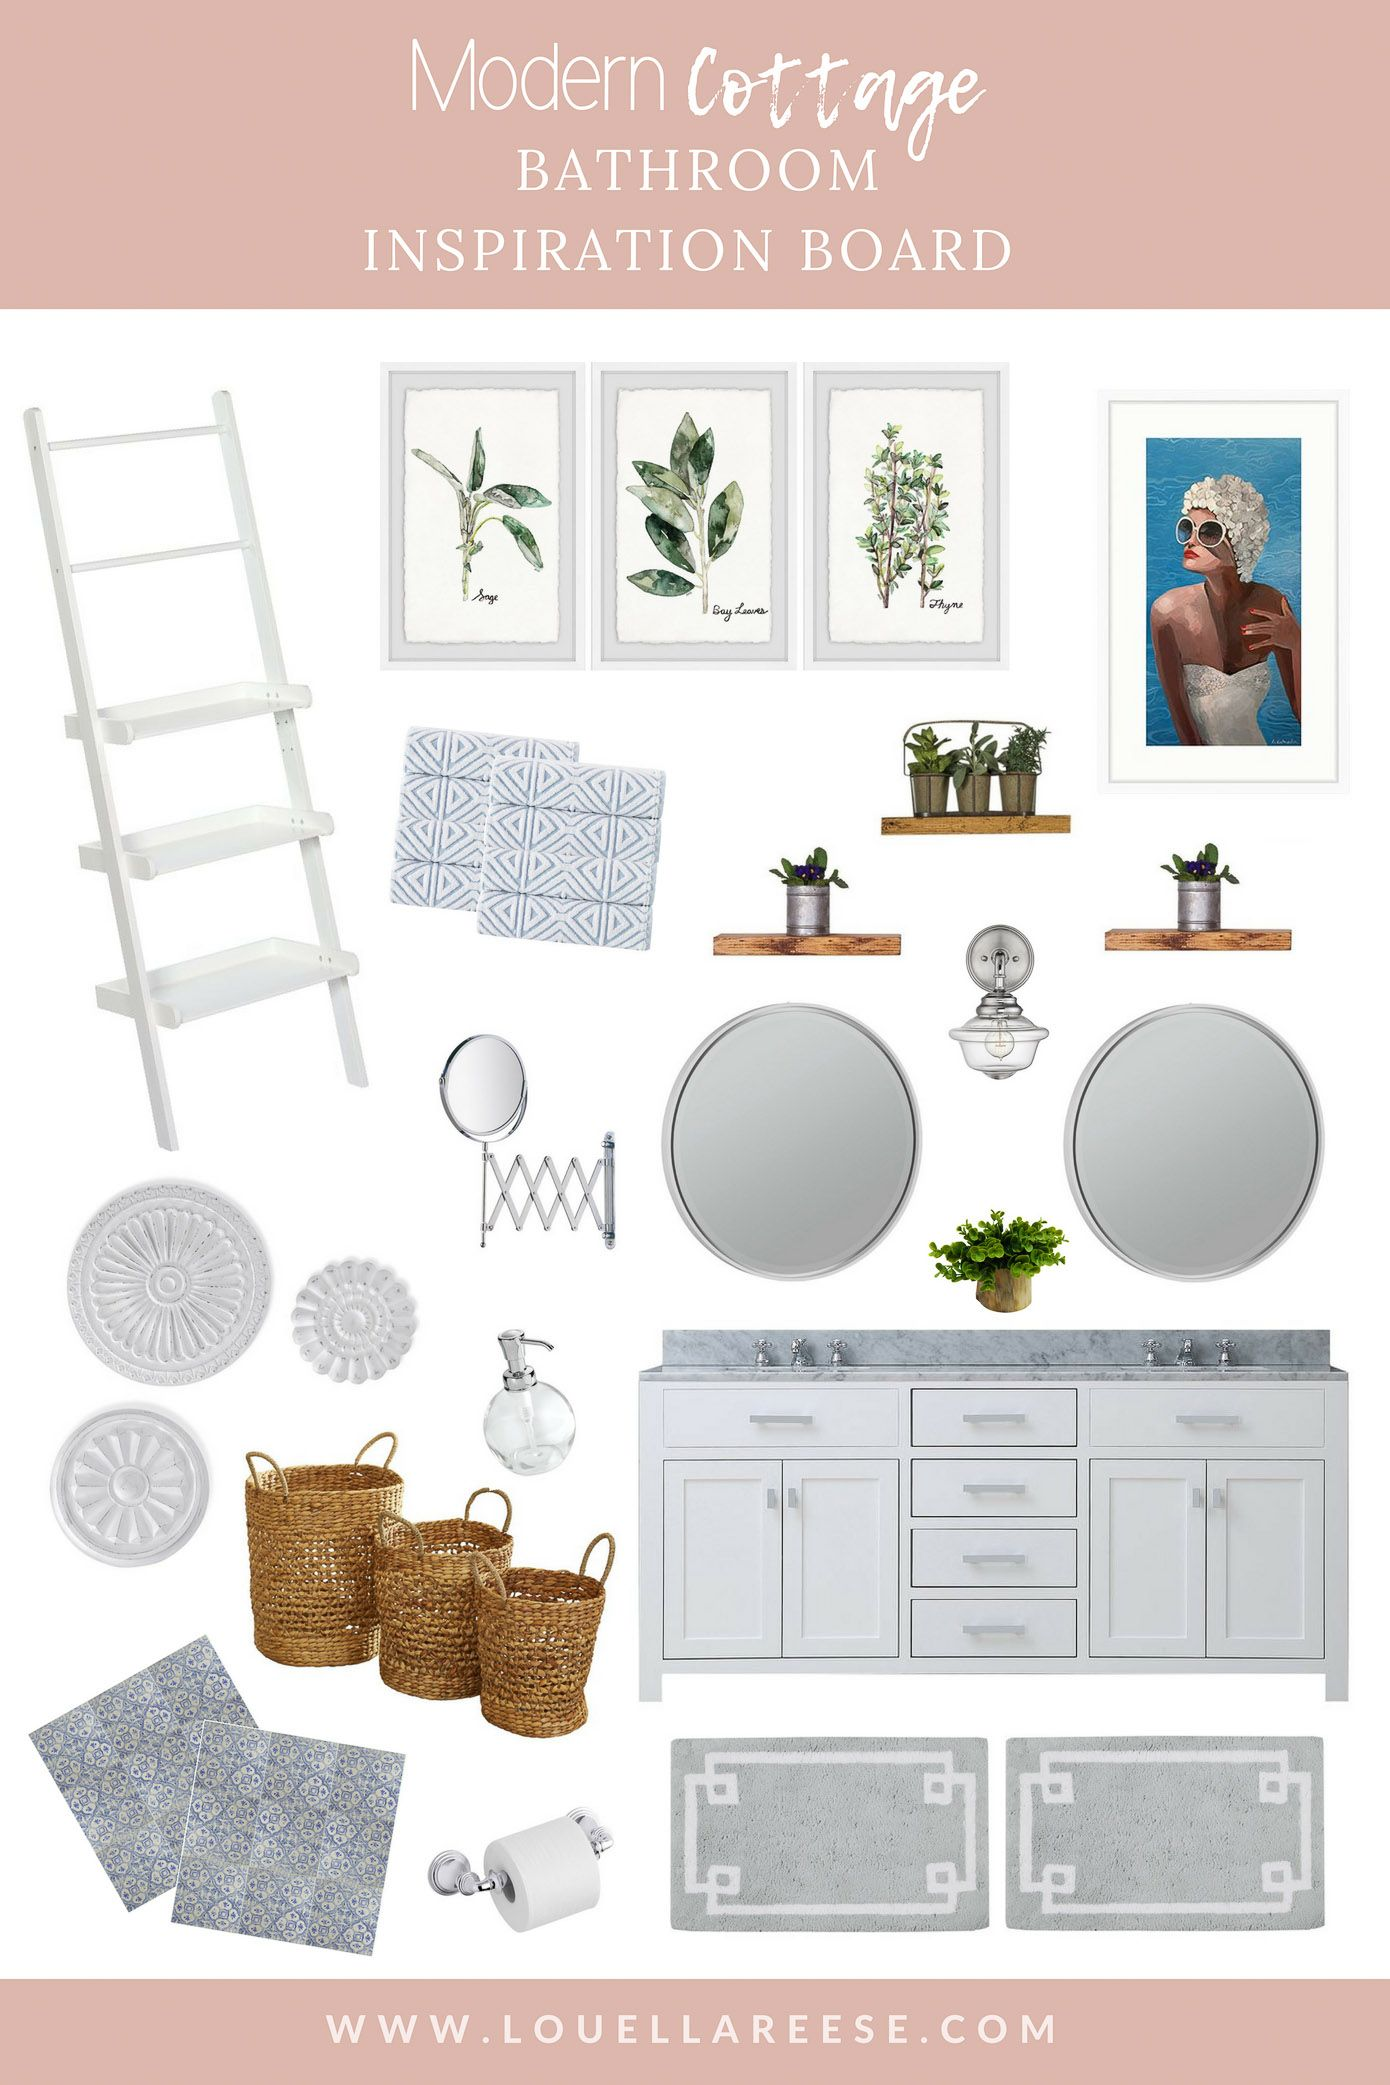 Modern Cottage Bathroom Inspiration Board - Louella Reese Life &